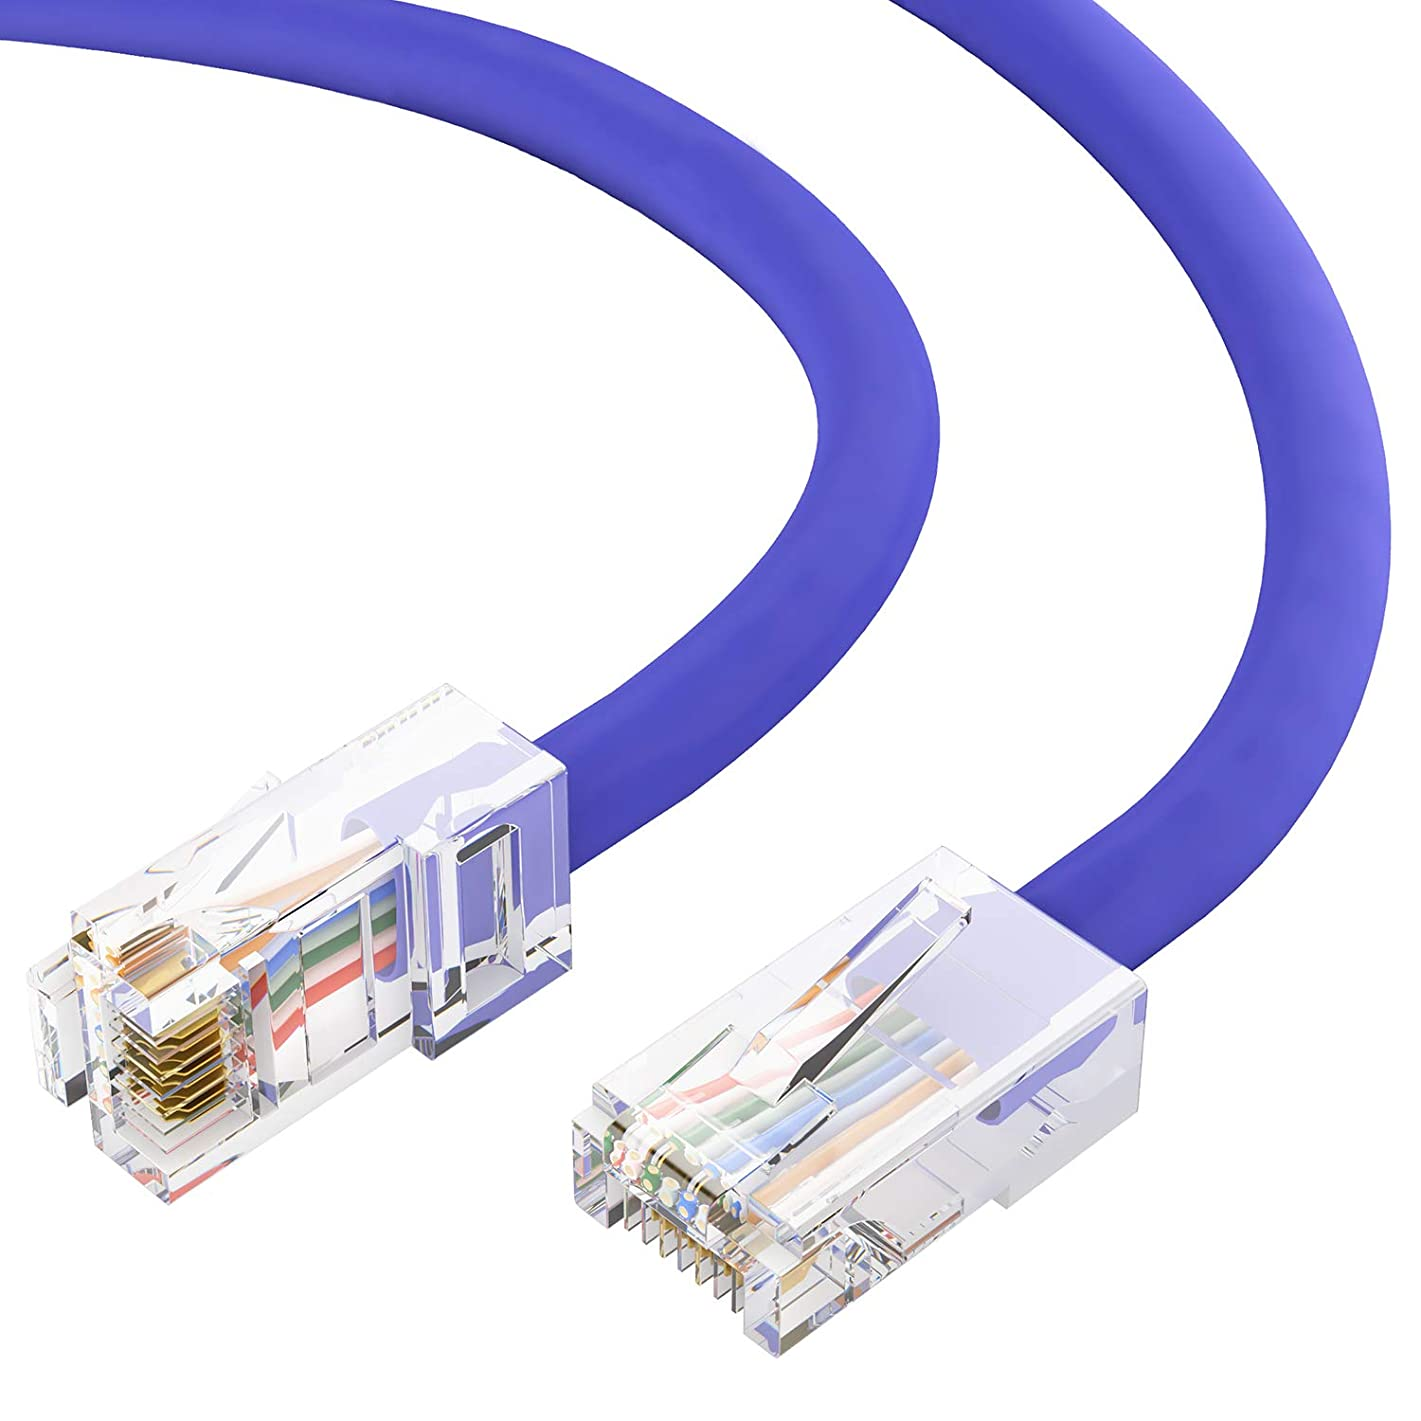 GOWOS Cat6 Ethernet Cable (3 Feet - Purple) 24AWG Network Cable with Gold Plated RJ45 Non-Booted Connector - High Speed LAN Internet/Patch Cable for PC/PS4/Xbox - ETL Listed